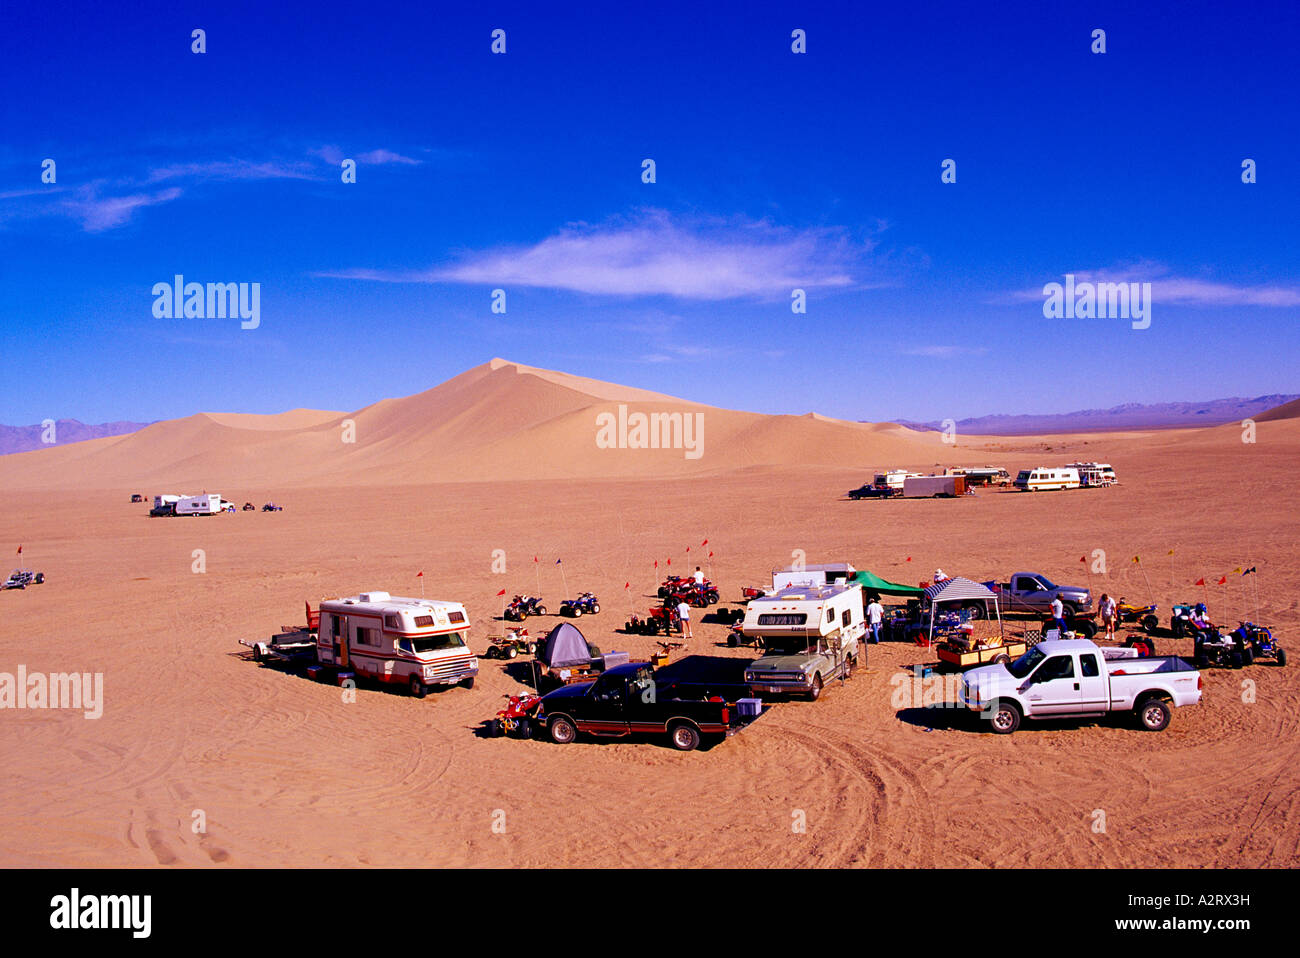 Dune Buggies and Campers at the Dumont Sand Dunes near Death Valley National Park California USA - Stock Image